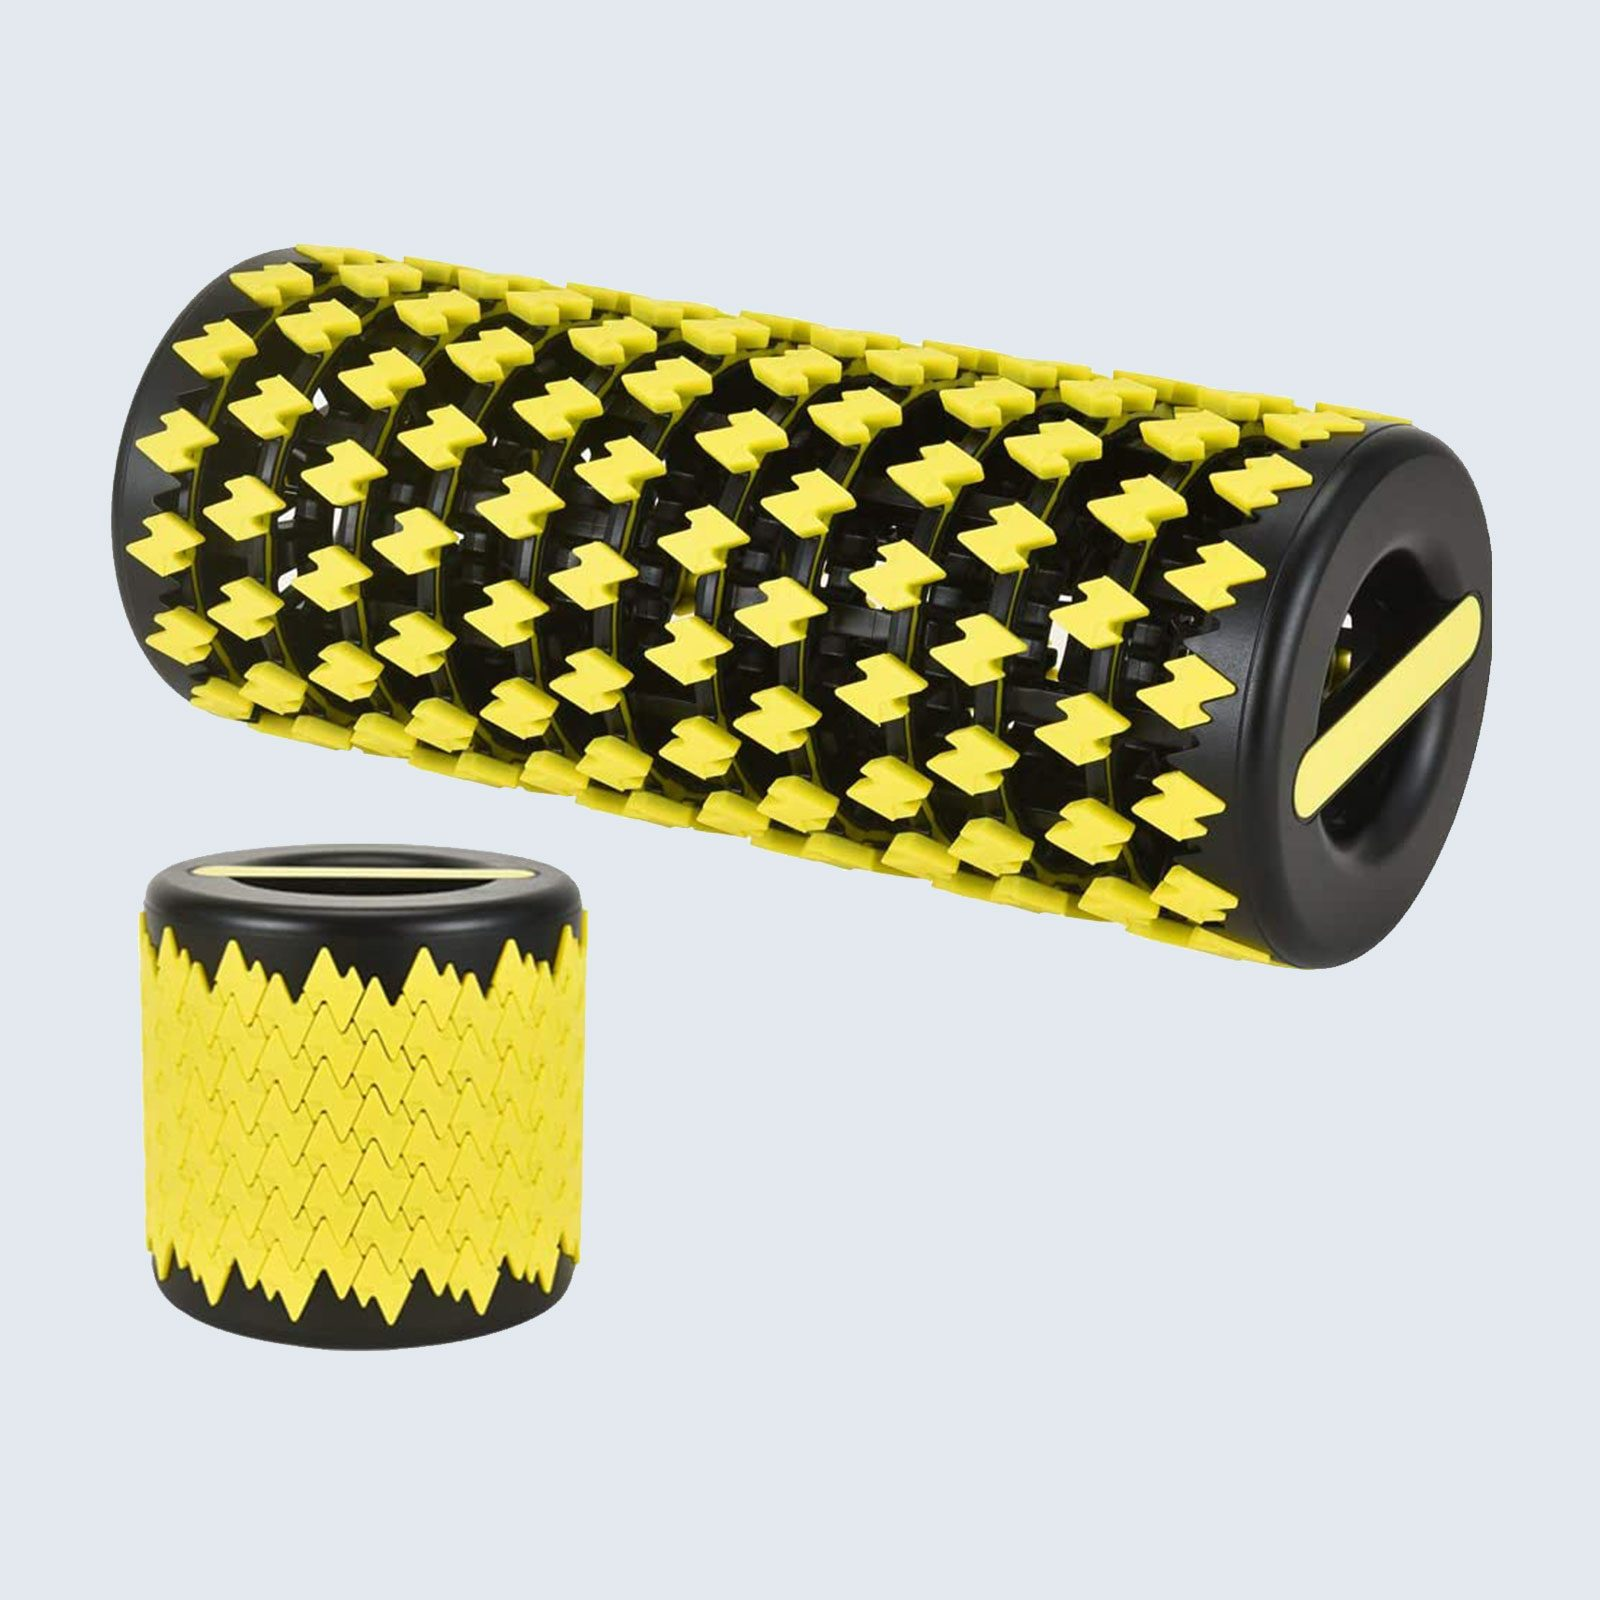 For workout warriors: EILISON Collapsible Foam Roller